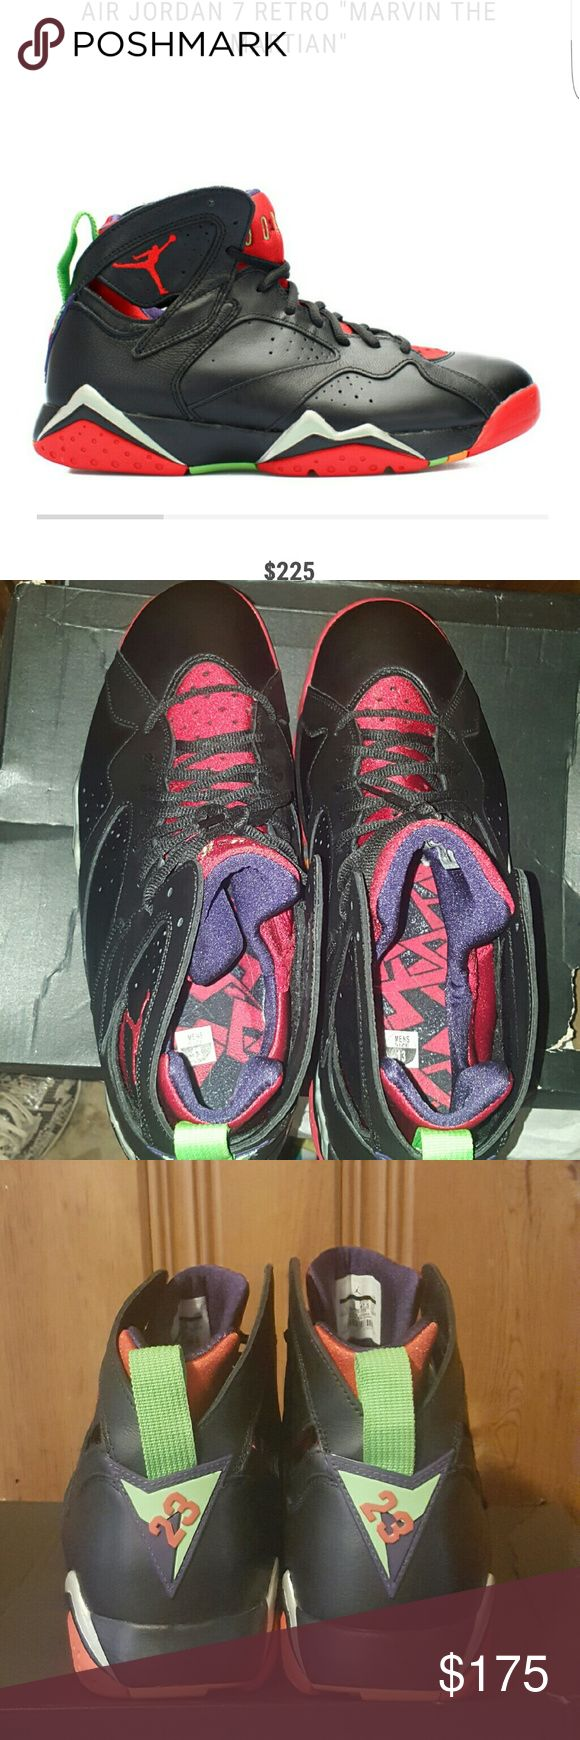 "Air Jordan 7 Retro ""Marvin The Martian"" Great condition! Only tried on once. Size 13 is SOLD OUT EVERYWHERE! Purchased through Flight Club. Box is damaged unfortunately. More pics availabke upon request. Jordan Shoes Sneakers"